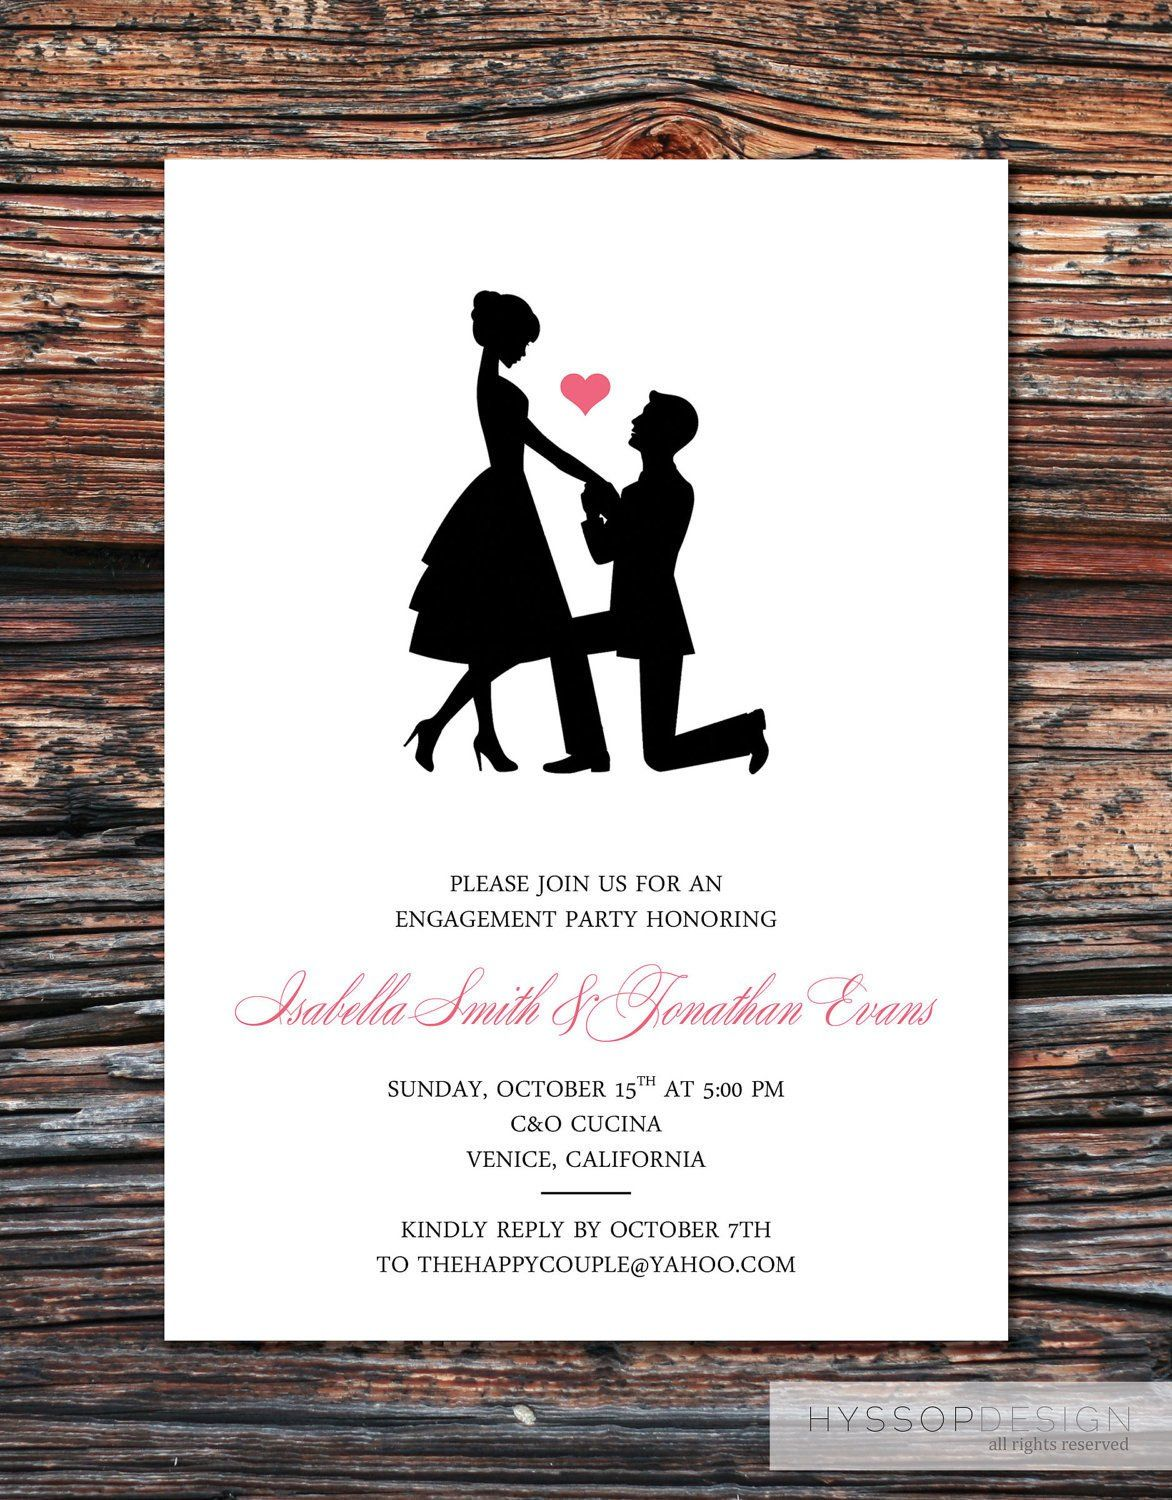 Engagement Party Invitation Templates Printable Diy Sweet Silhouette Proposal Engagement Invitation Template Engagement Invitations Free Engagement Invitations